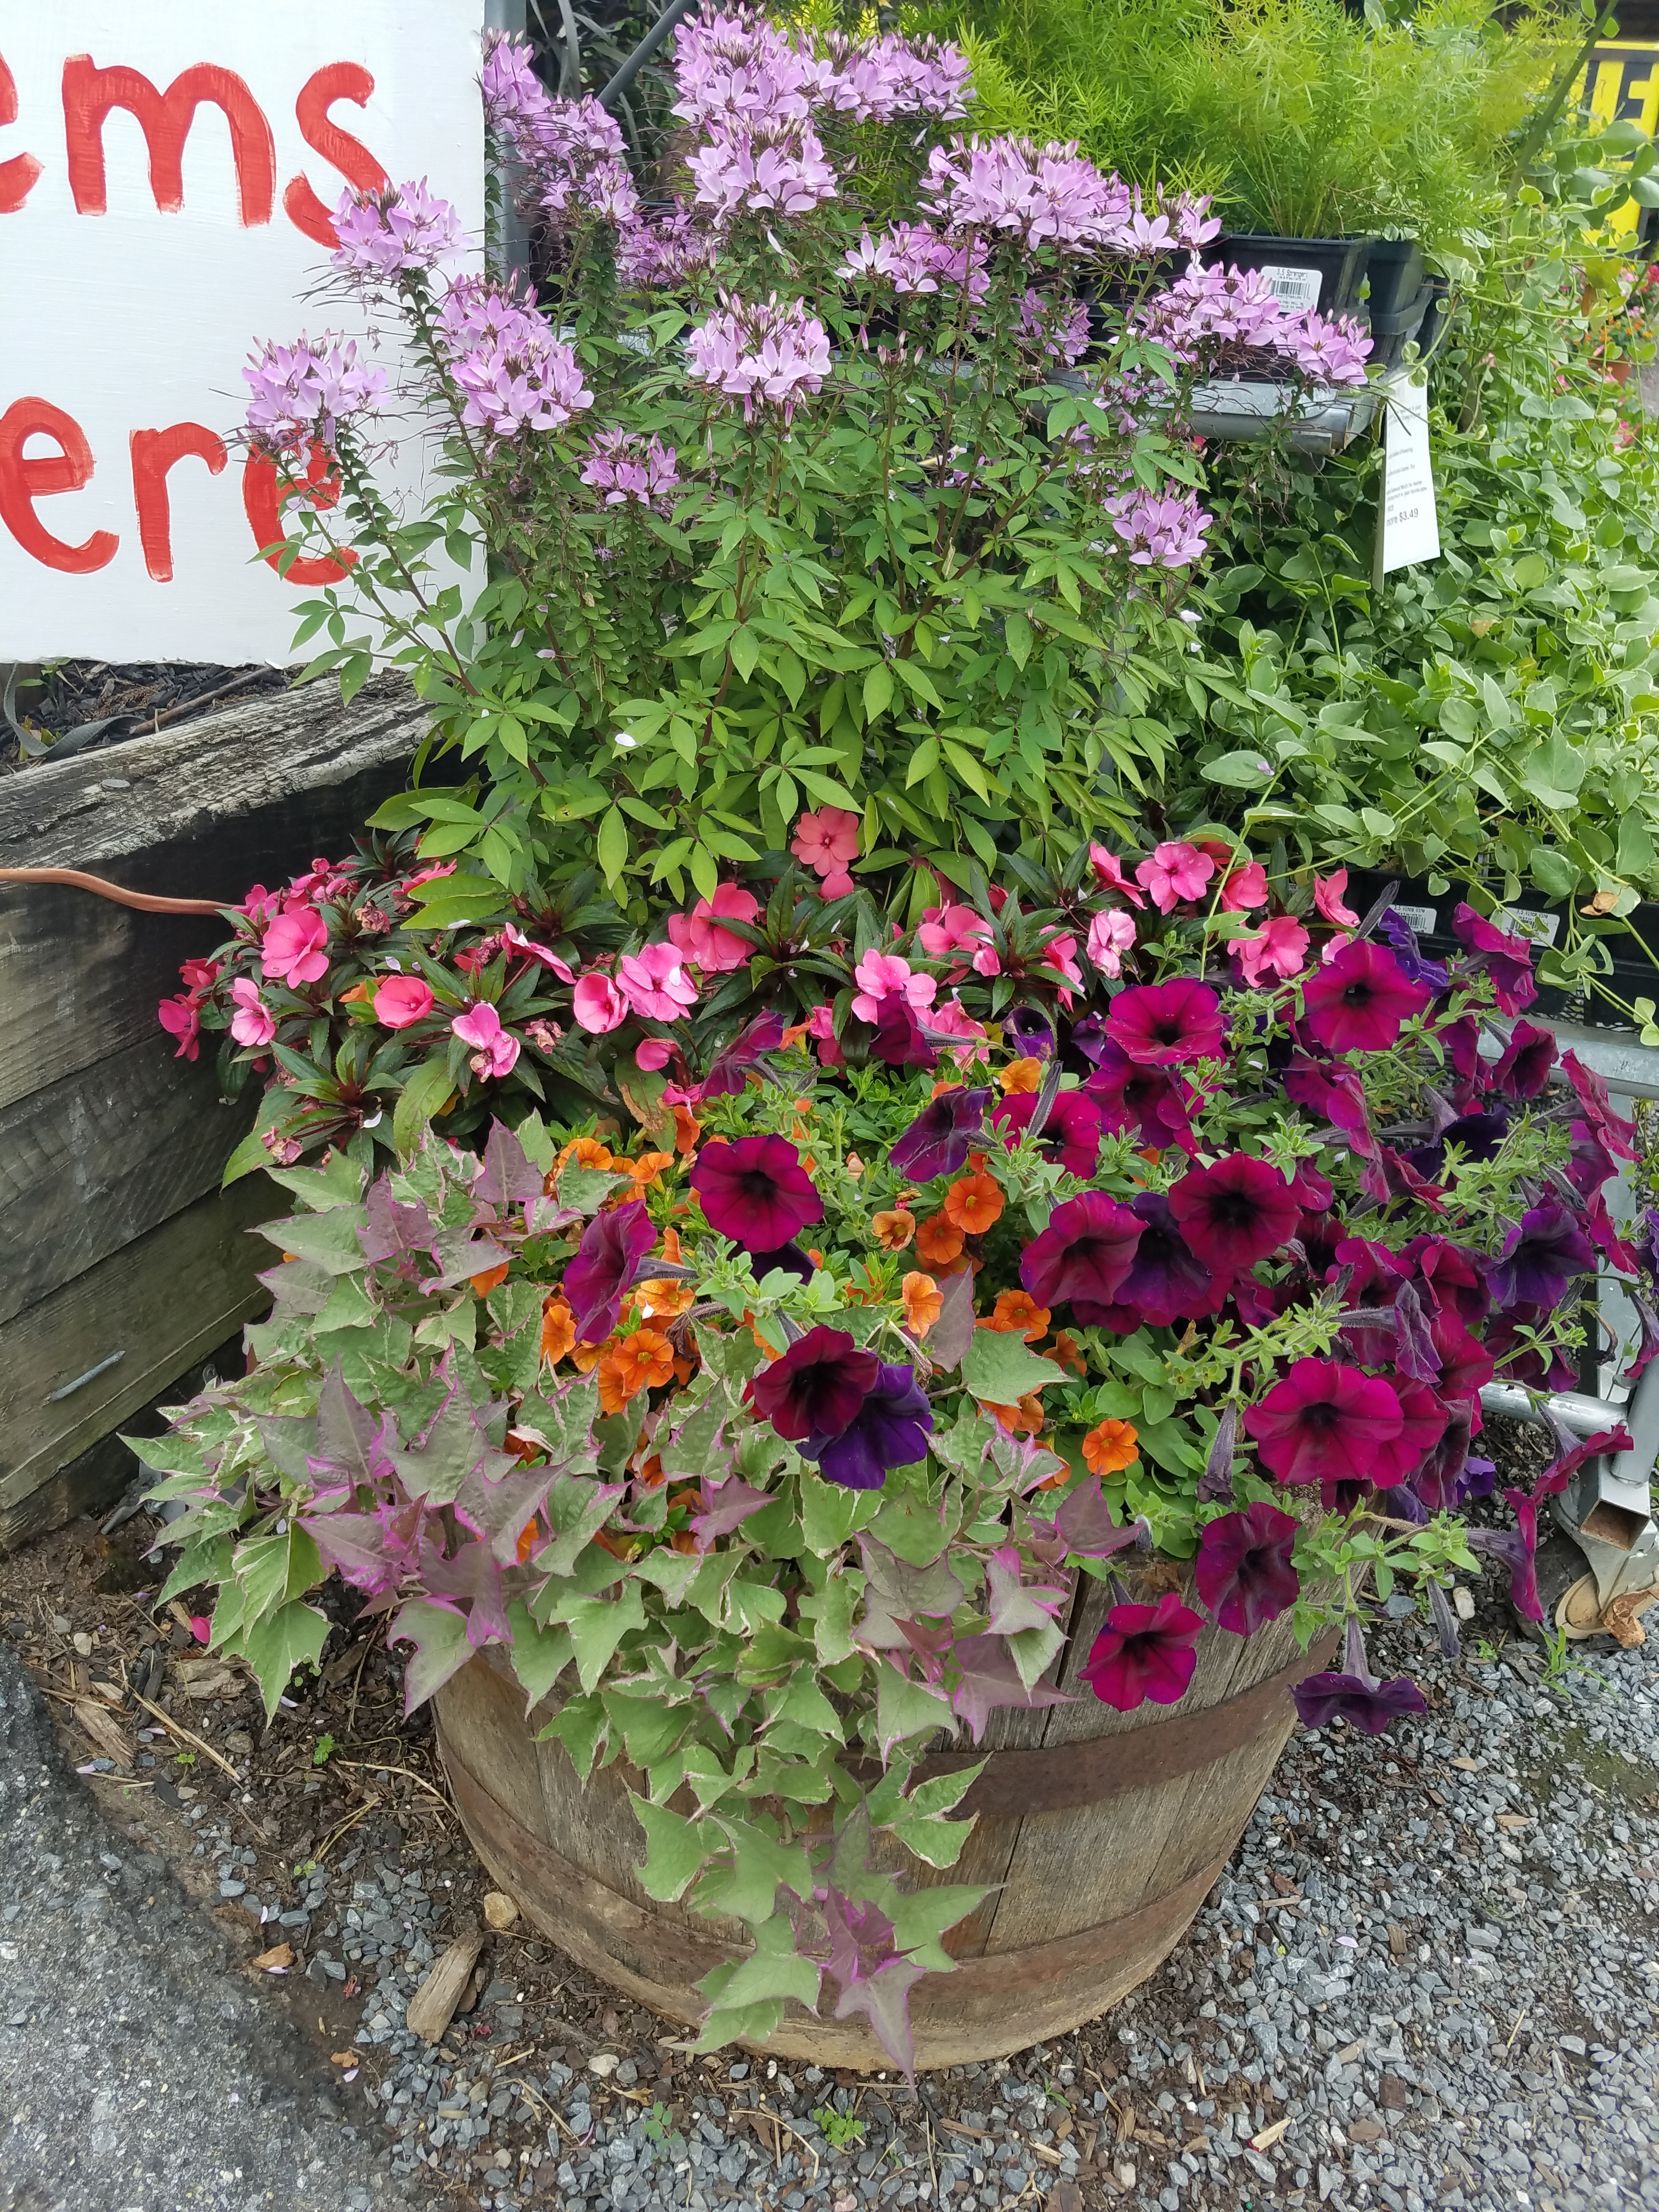 Our Convenient Nursery Offers A Full Selection Of Shade And Flowering  Trees, Native Plants, Japanese Maples, Shrubs, Groundcovers, And Perennial  And Annual ...